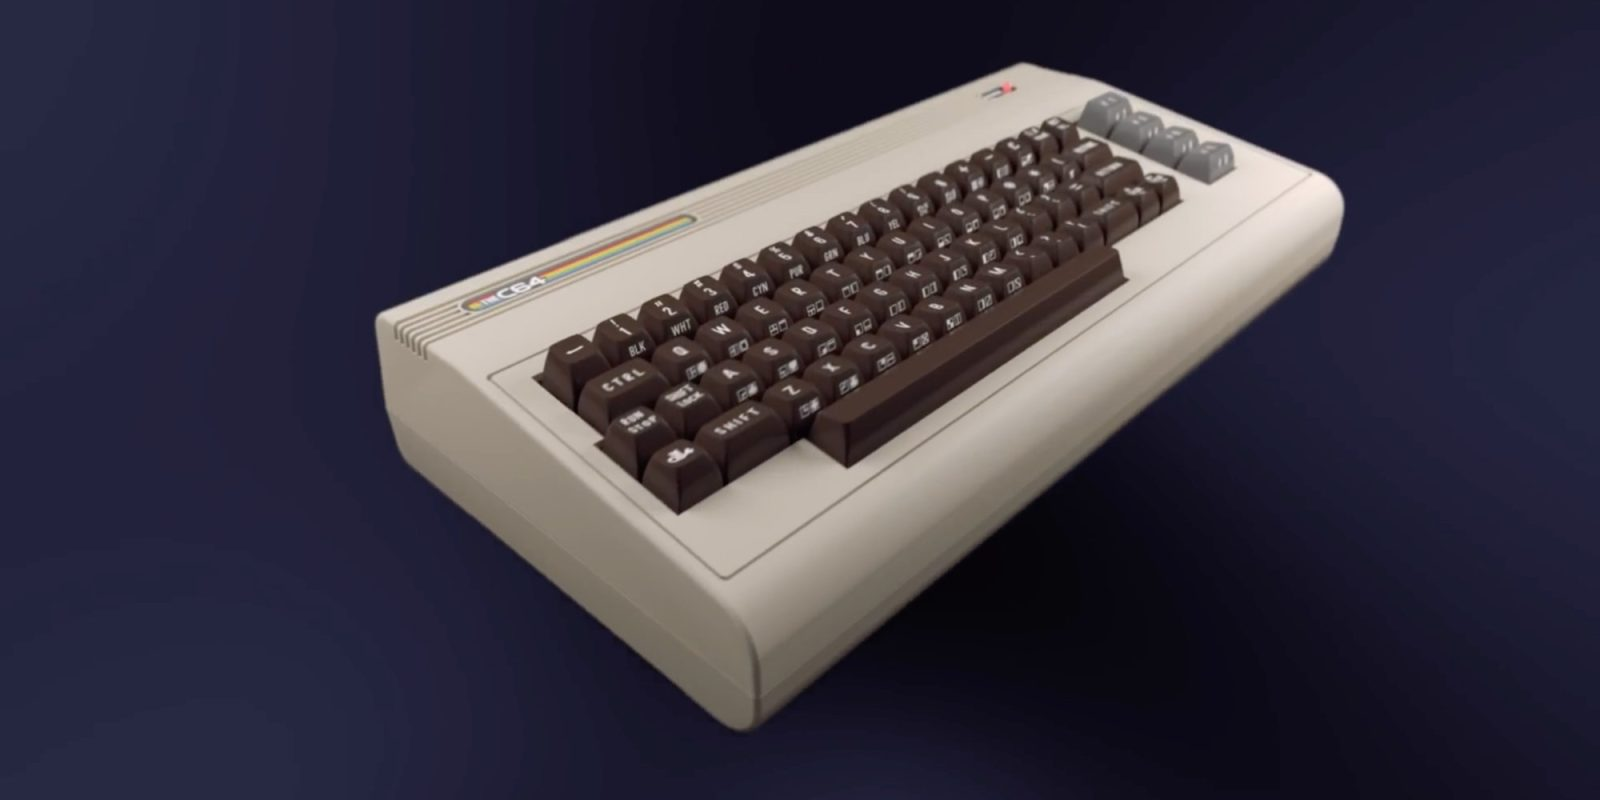 Retro Games unveils THEC64, a full-size Commodore 64 clone